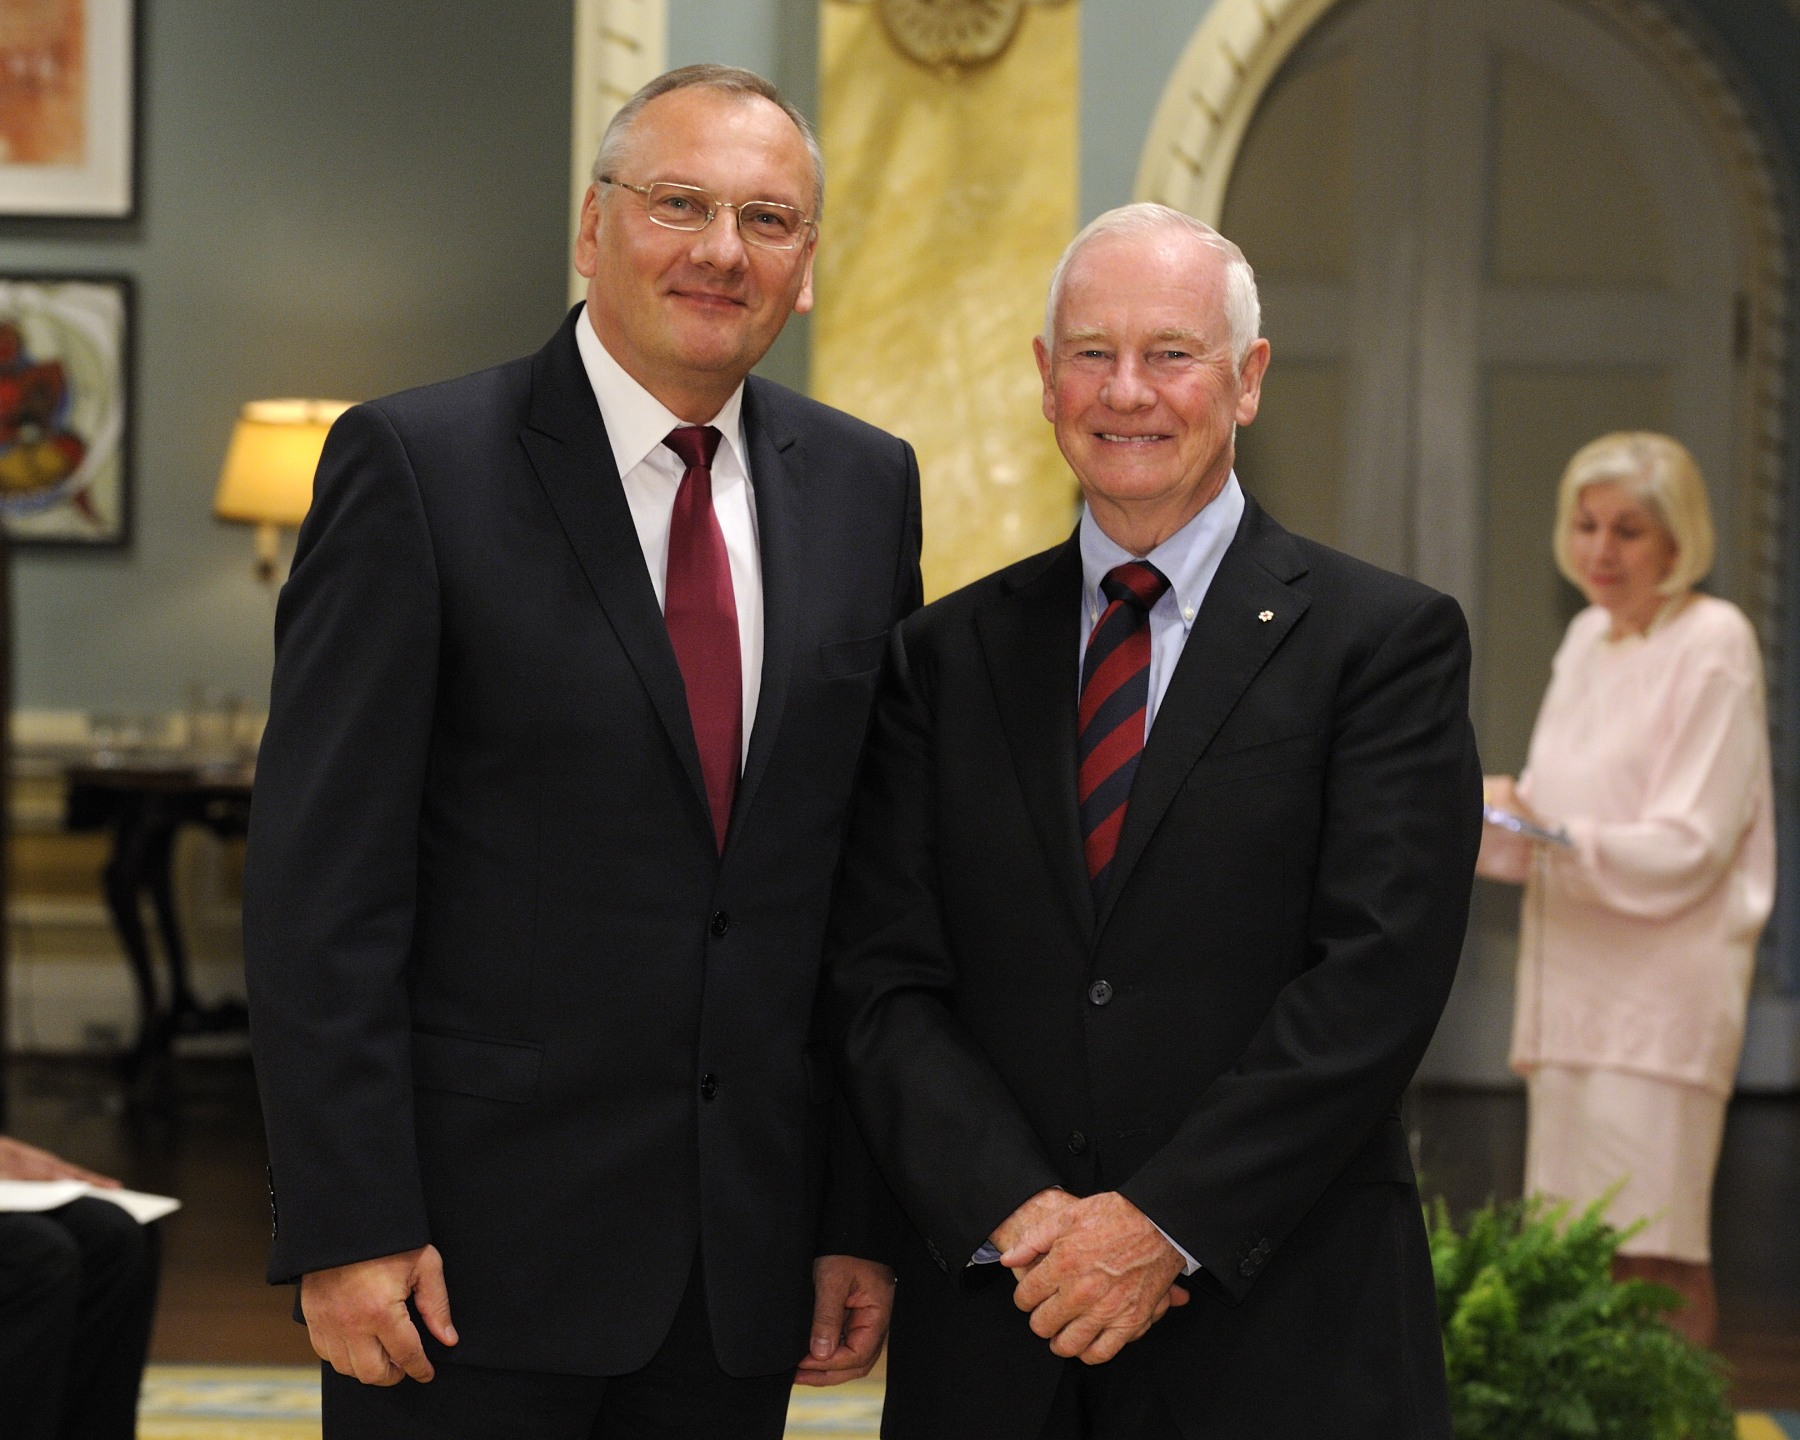 The Governor General received the credentials of His Excellency Vytautas Žalys, Ambassador of the Republic of Lithuania.